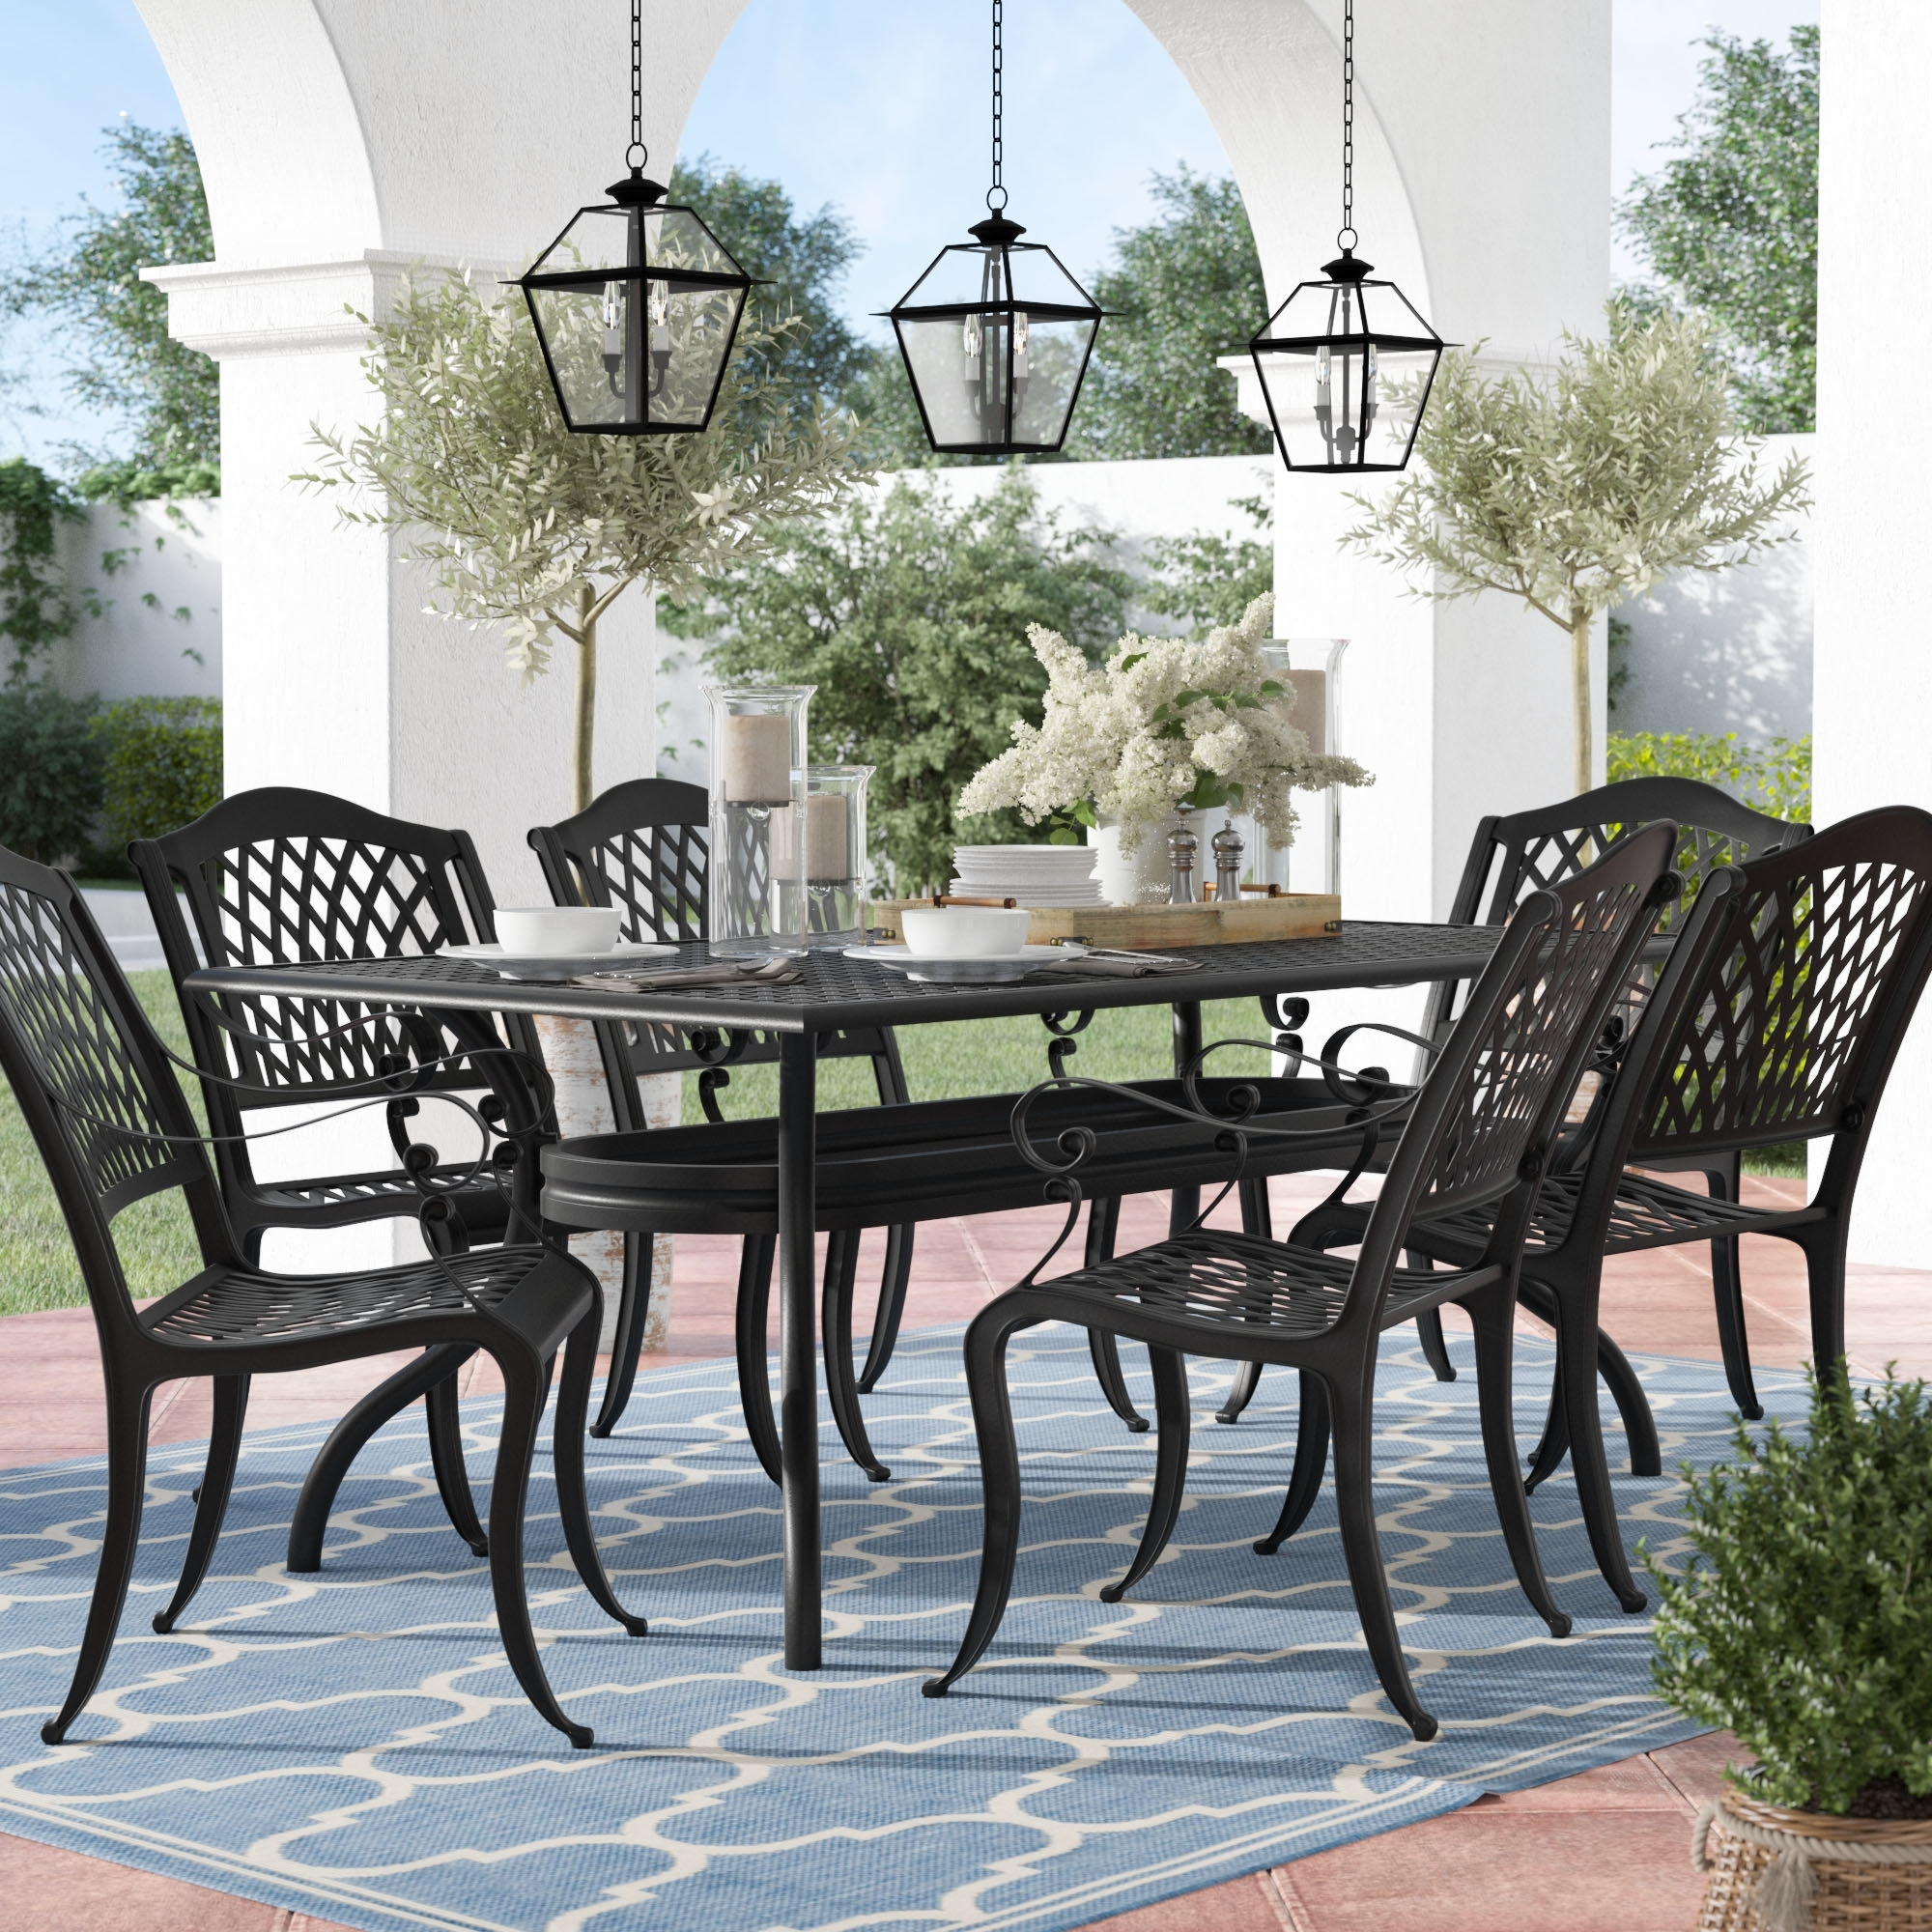 Metal Patio Furniture You'll Love | Wayfair Throughout Best And Newest Market 7 Piece Dining Sets With Side Chairs (Image 14 of 20)